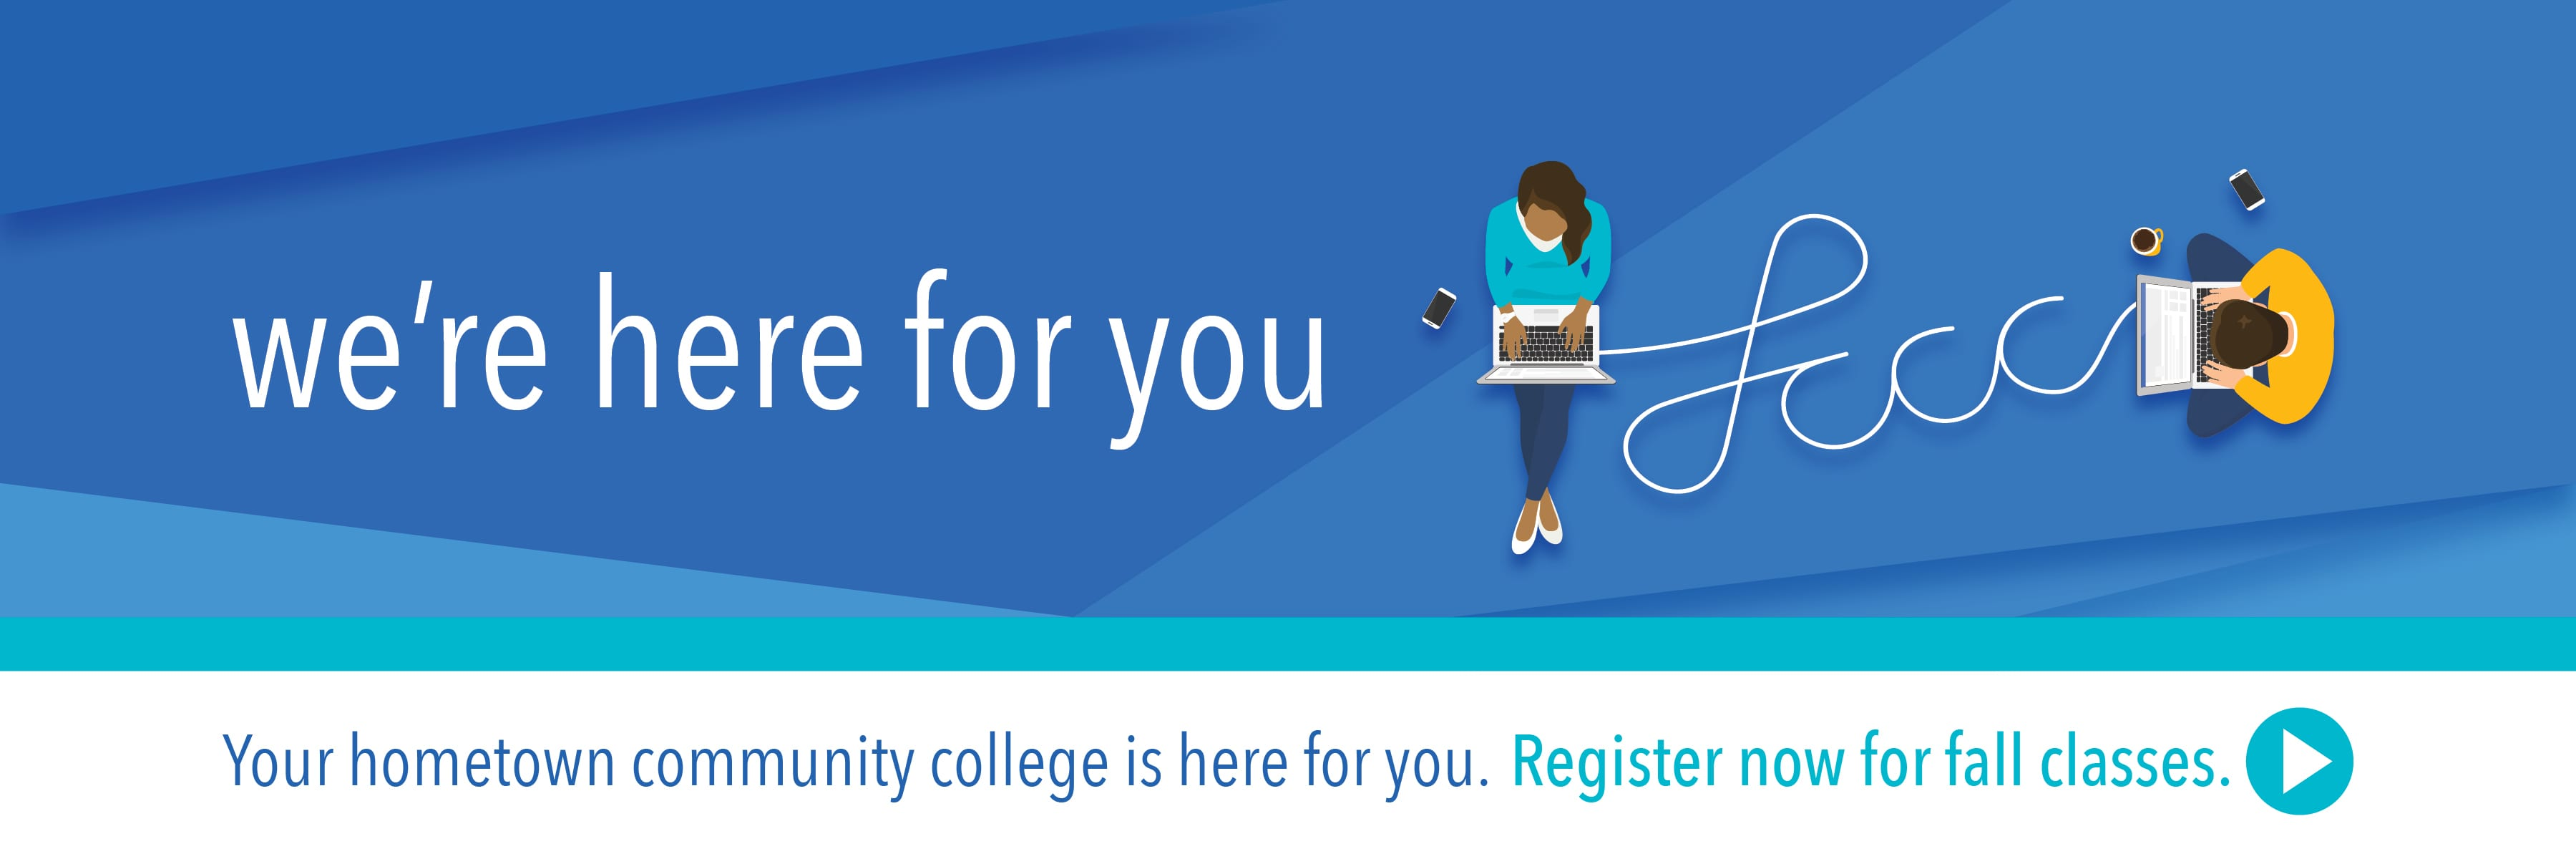 We're Here for You. Register now for fall classes.